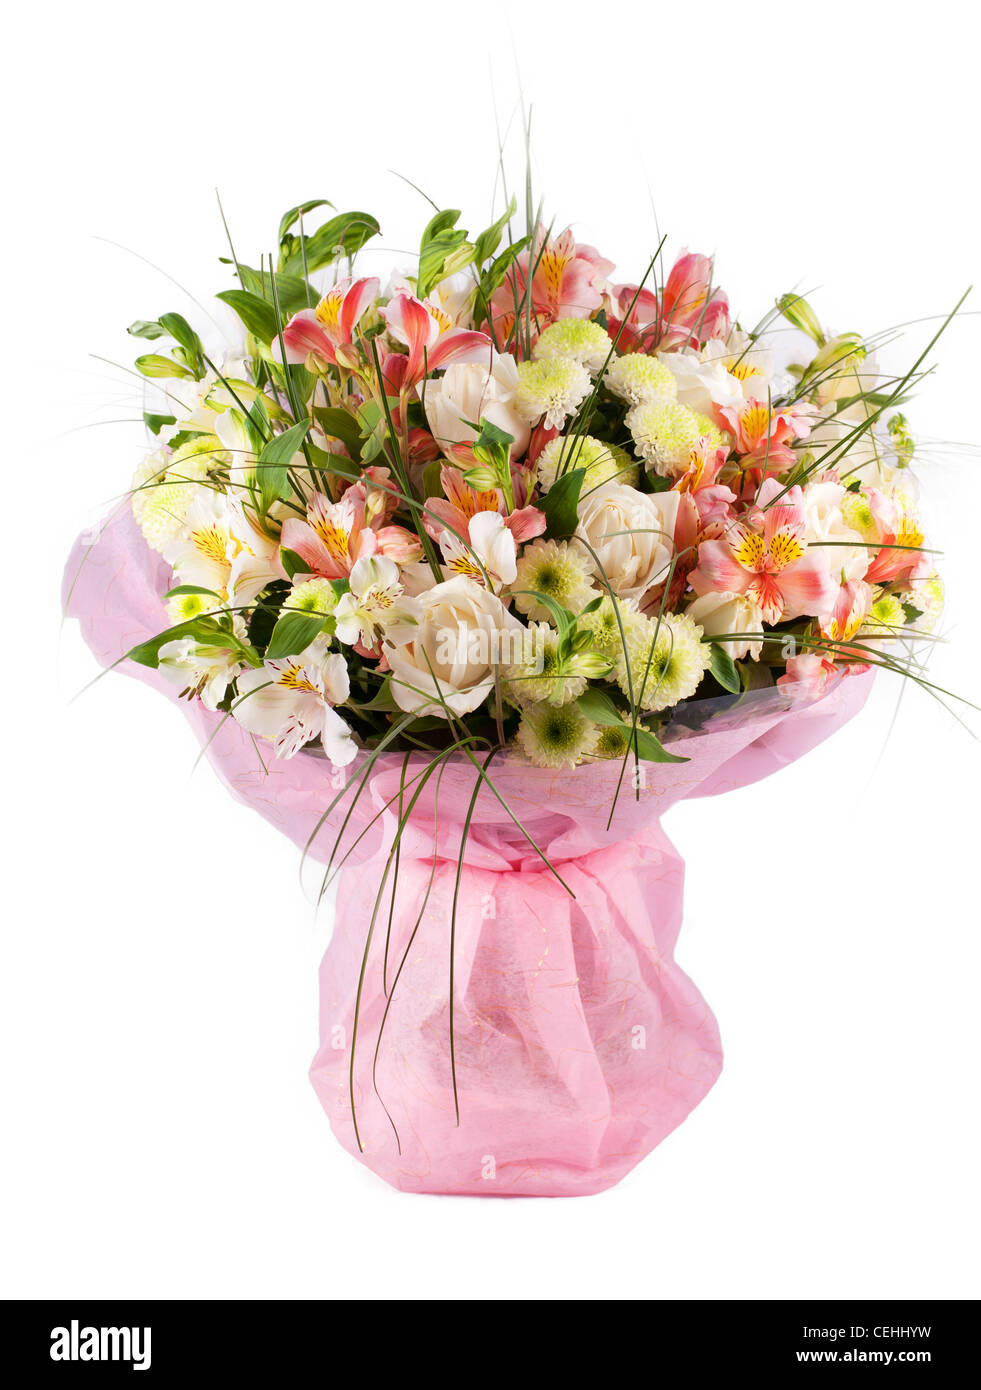 Spring flowers bouquet with a lot of different flowers stock photo spring flowers bouquet with a lot of different flowers izmirmasajfo